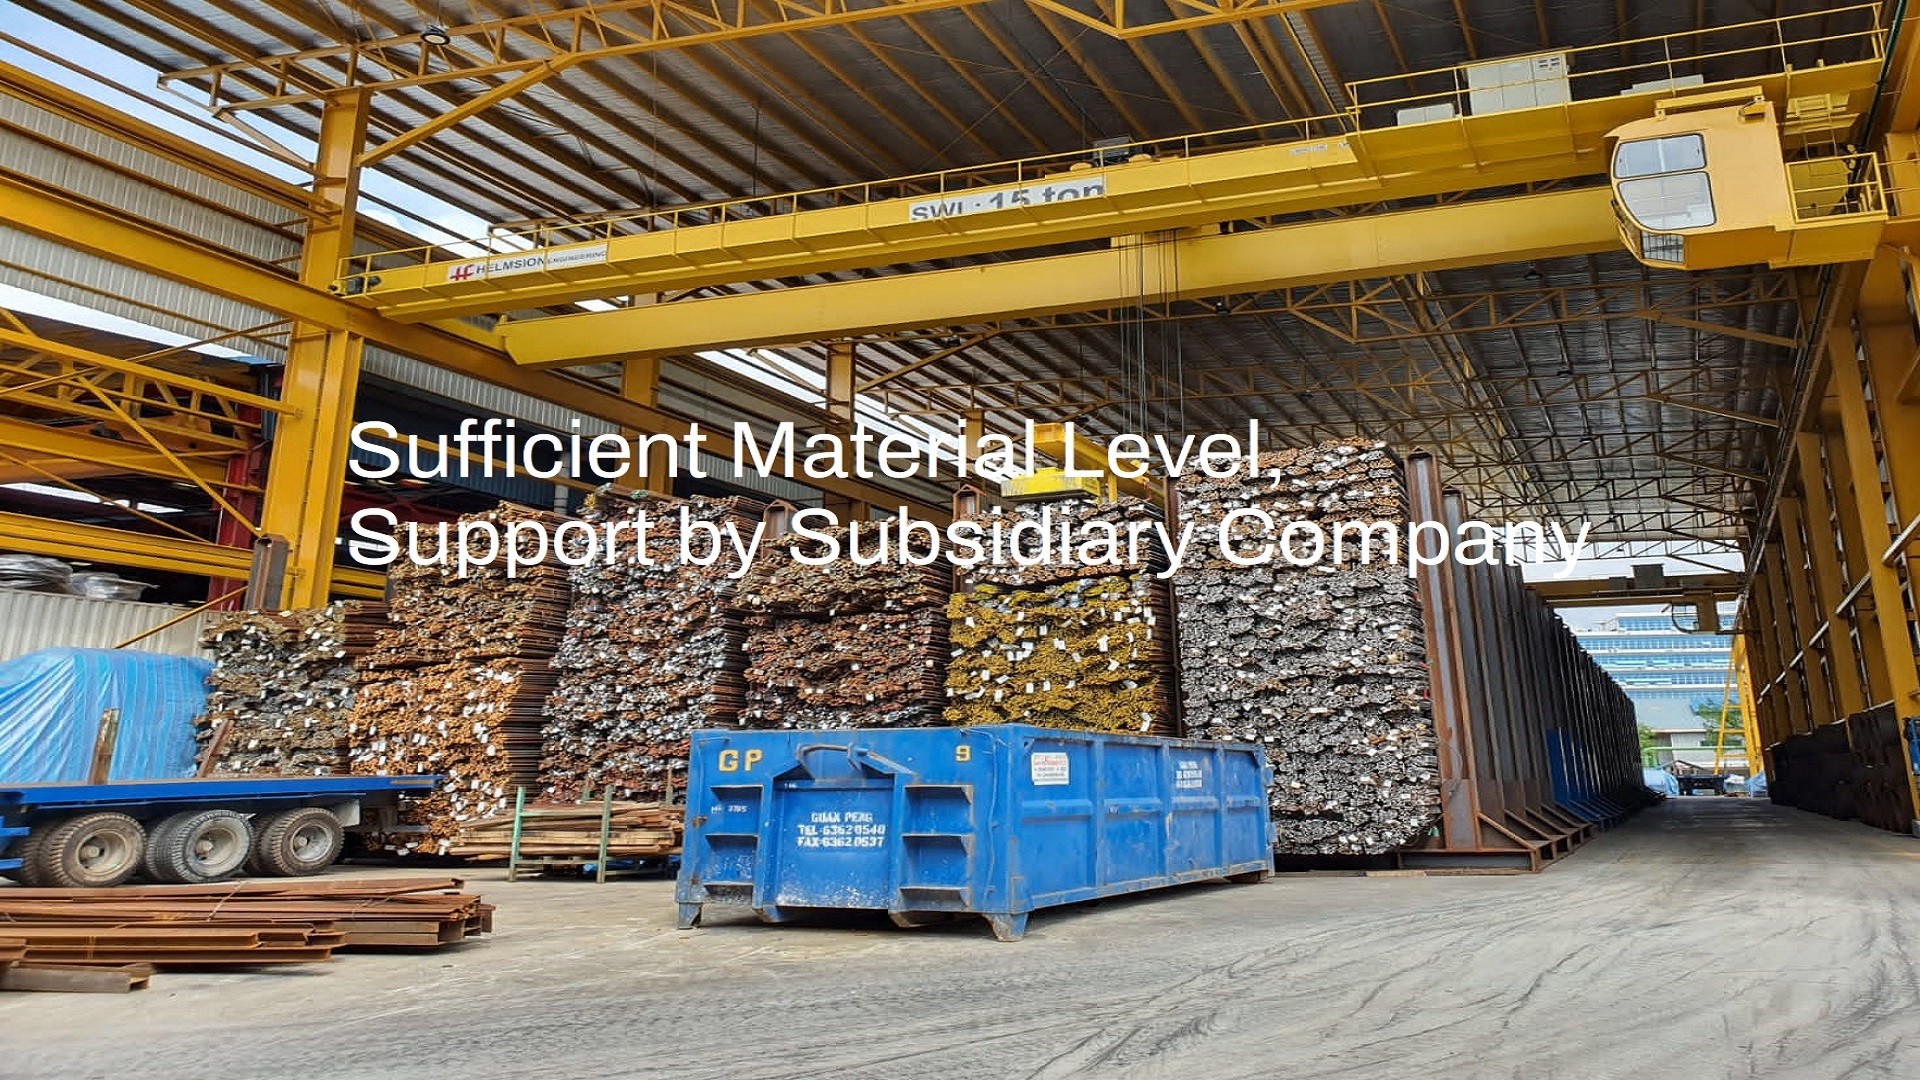 Sufficient material level, support by subsidiary company